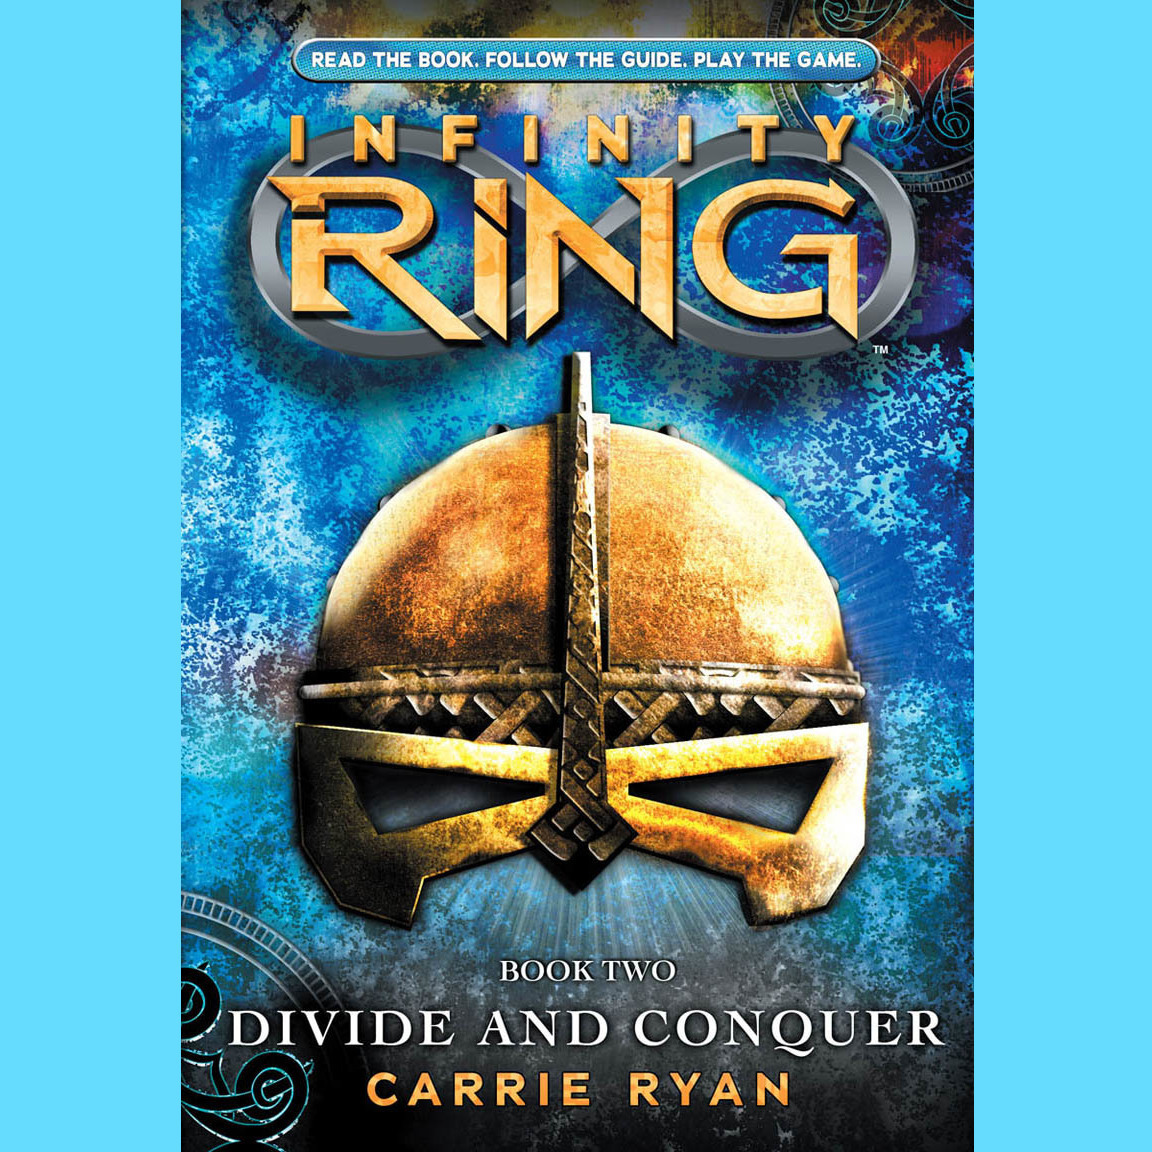 Printable Divide and Conquer Audiobook Cover Art